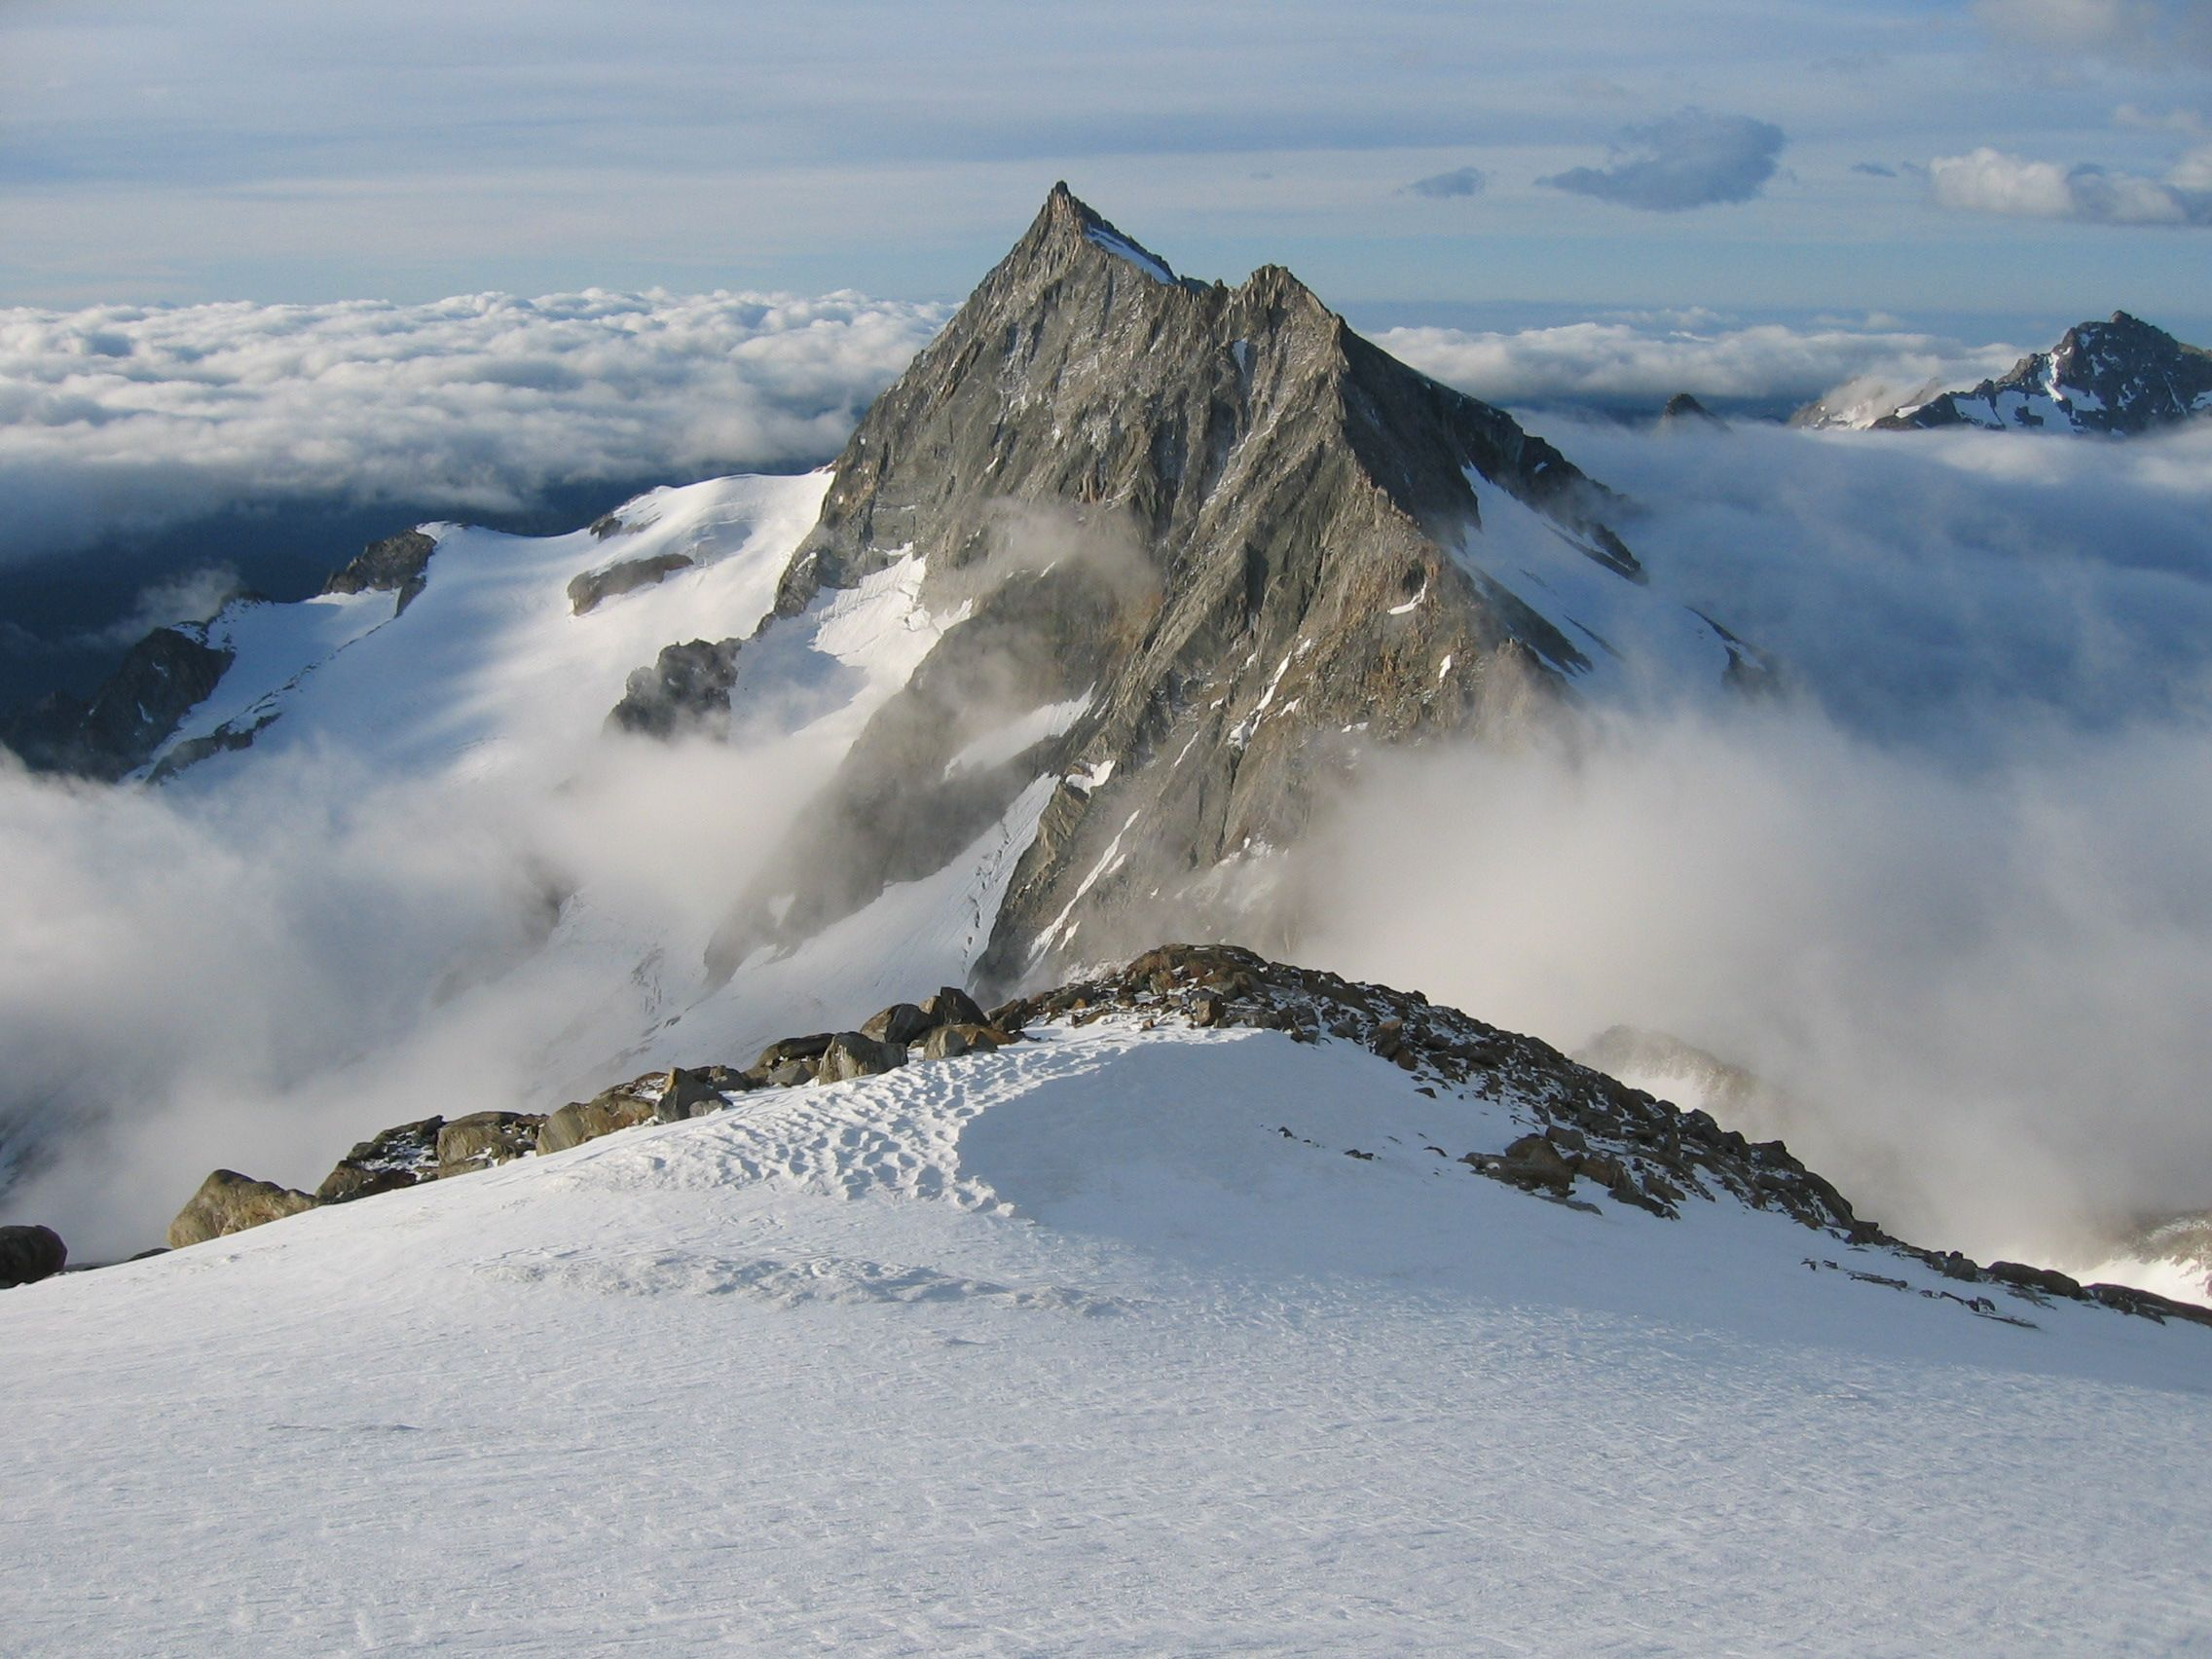 View from the Weissmies